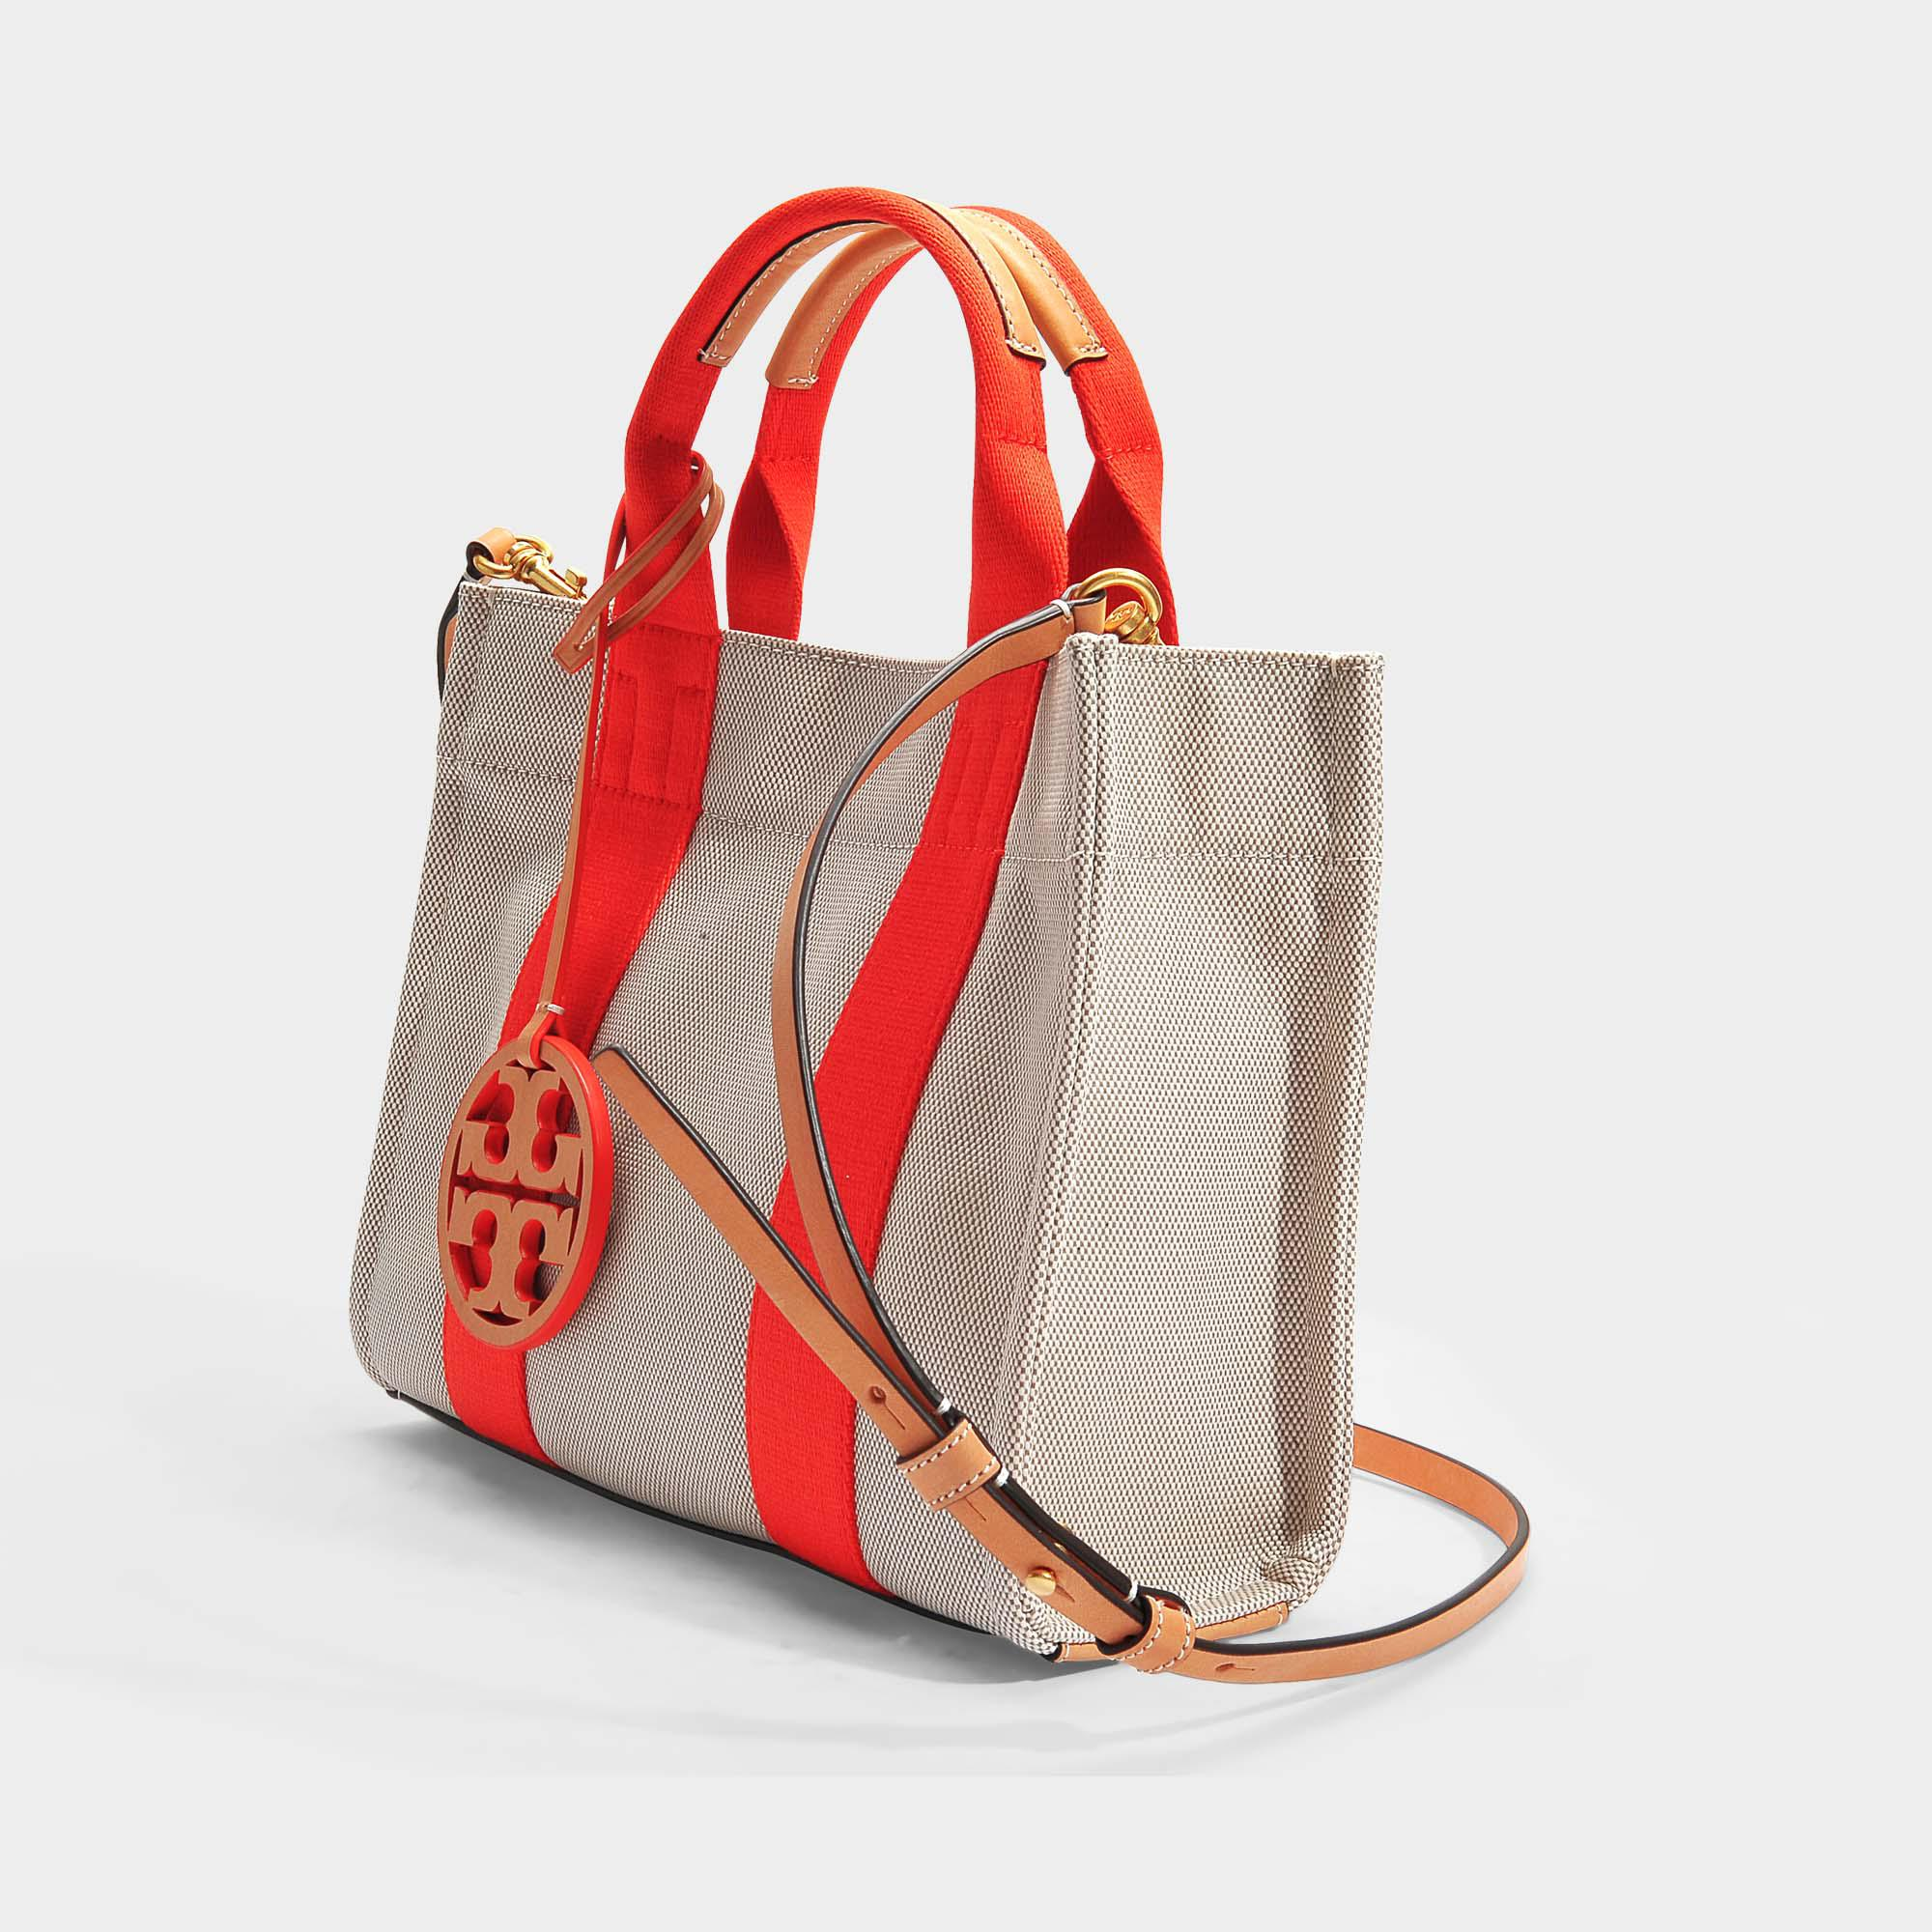 8b2abf05534 Lyst - Tory Burch Miller Canvas Mini Tote Bag In Natural And Poppy ...